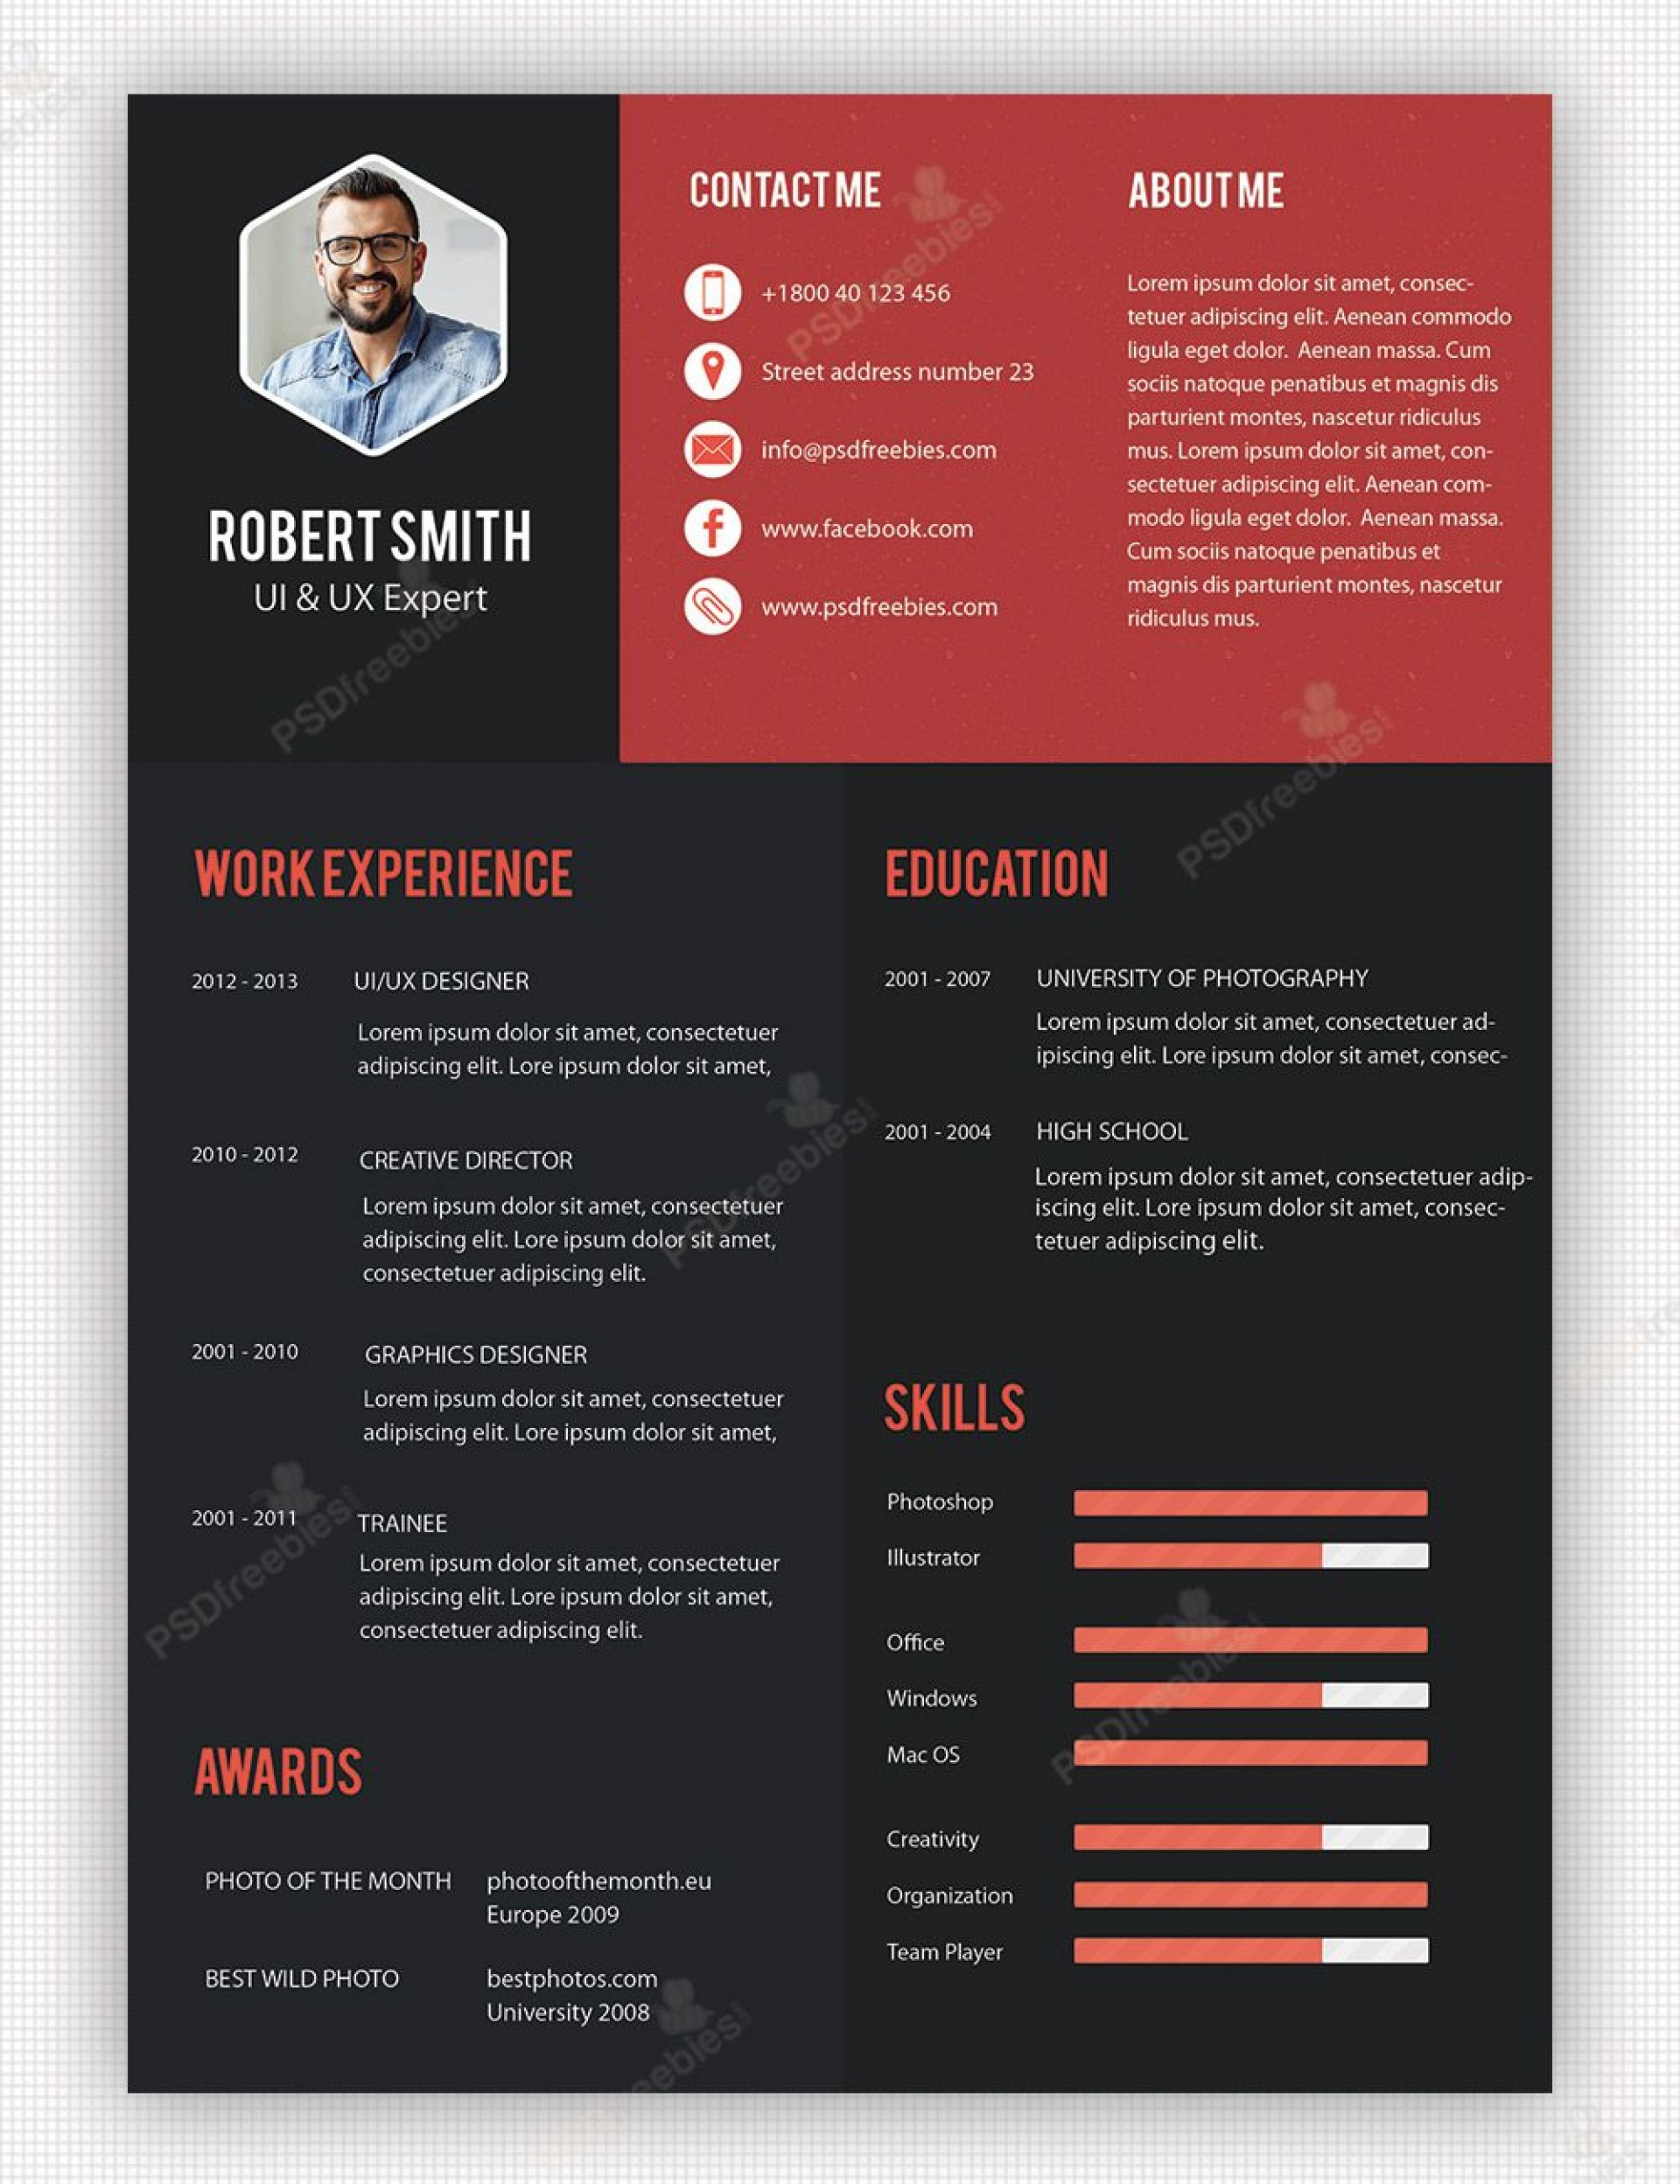 003 Rare Photoshop Cv Template Free Download Idea  Creative Resume Psd Adobe1920